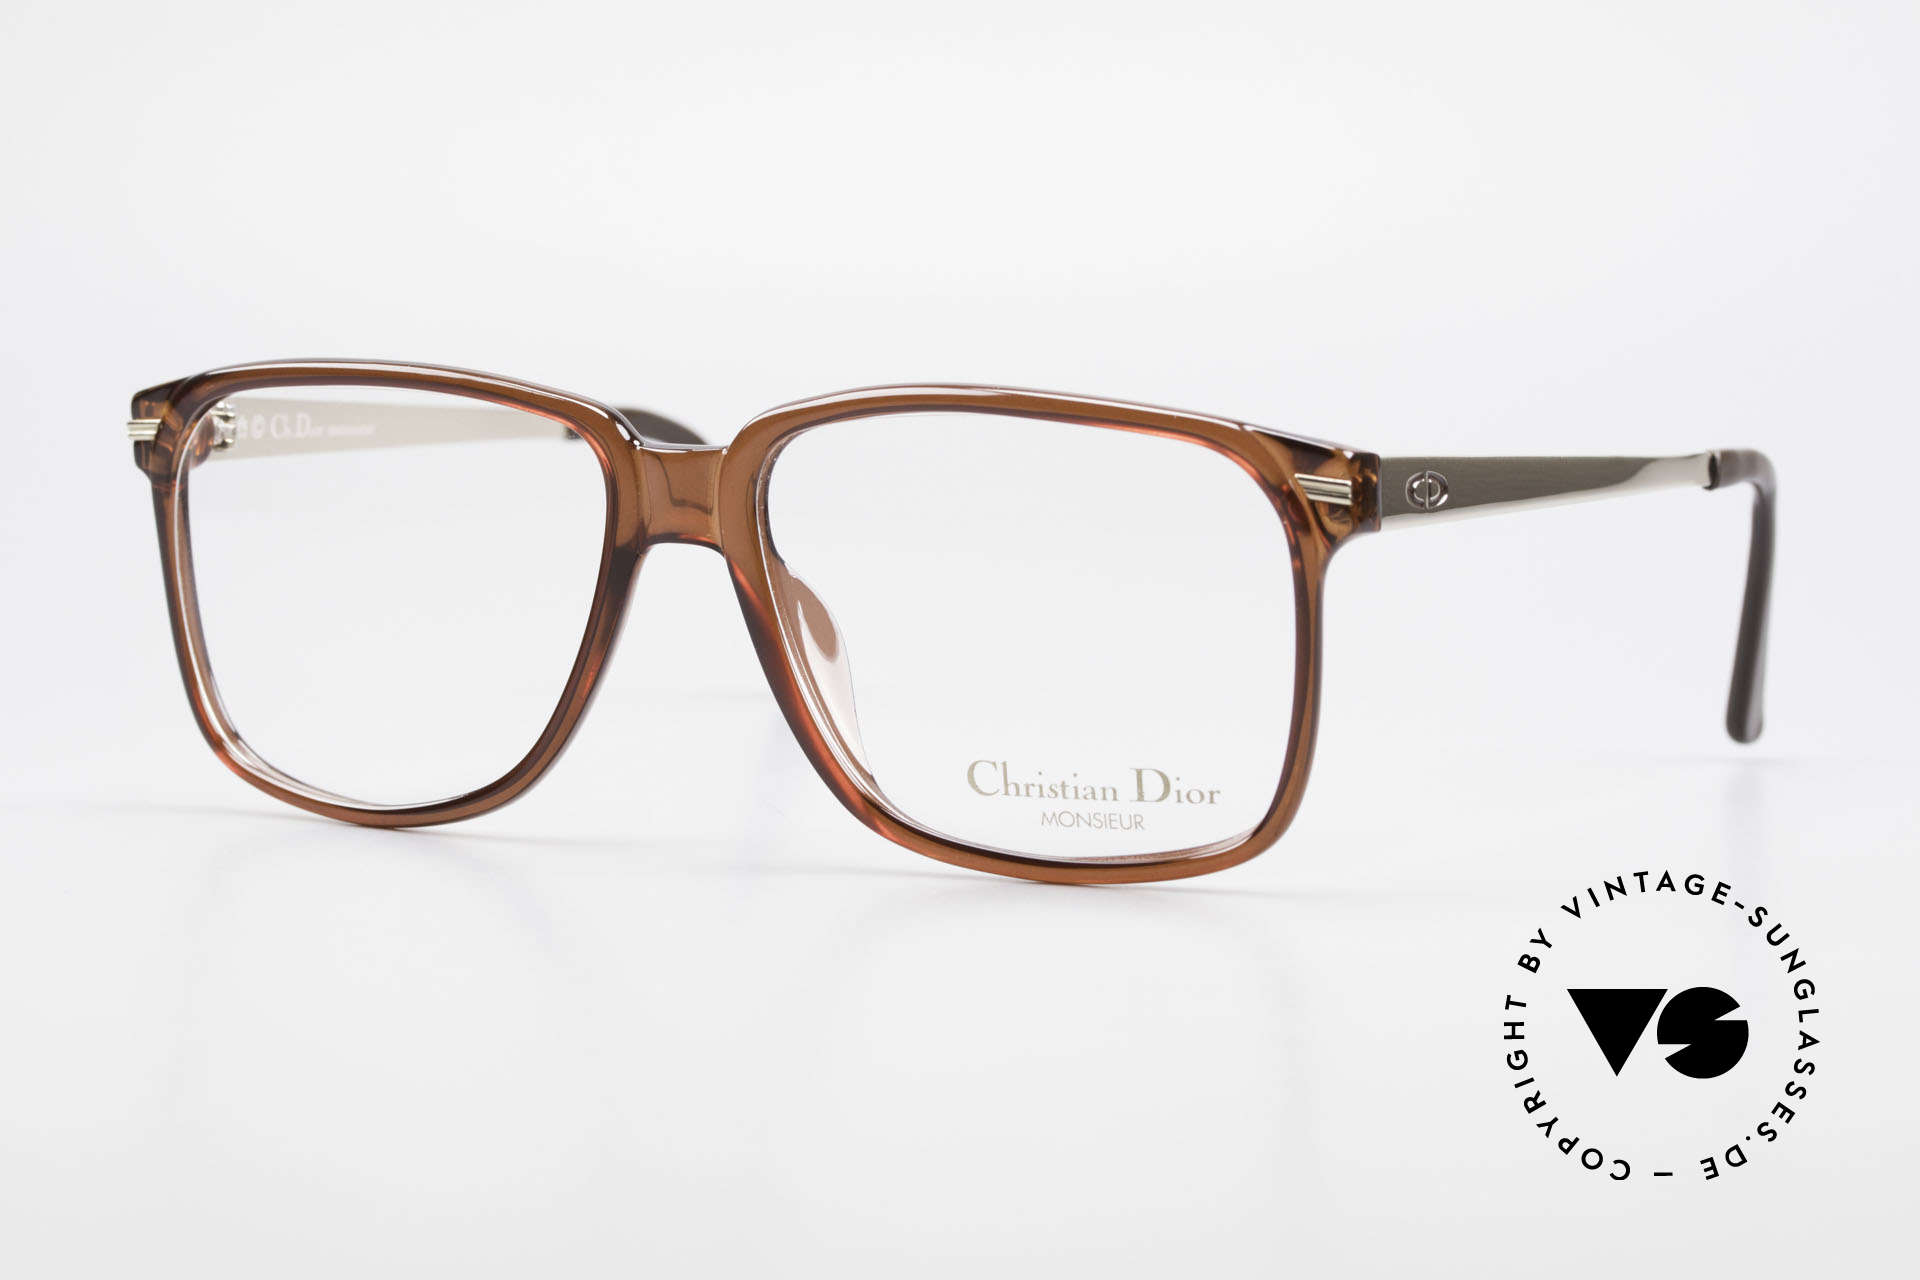 Christian Dior 2460 80's Frame Monsieur Series, striking frame design by Chr. Dior of the 80's, Made for Men